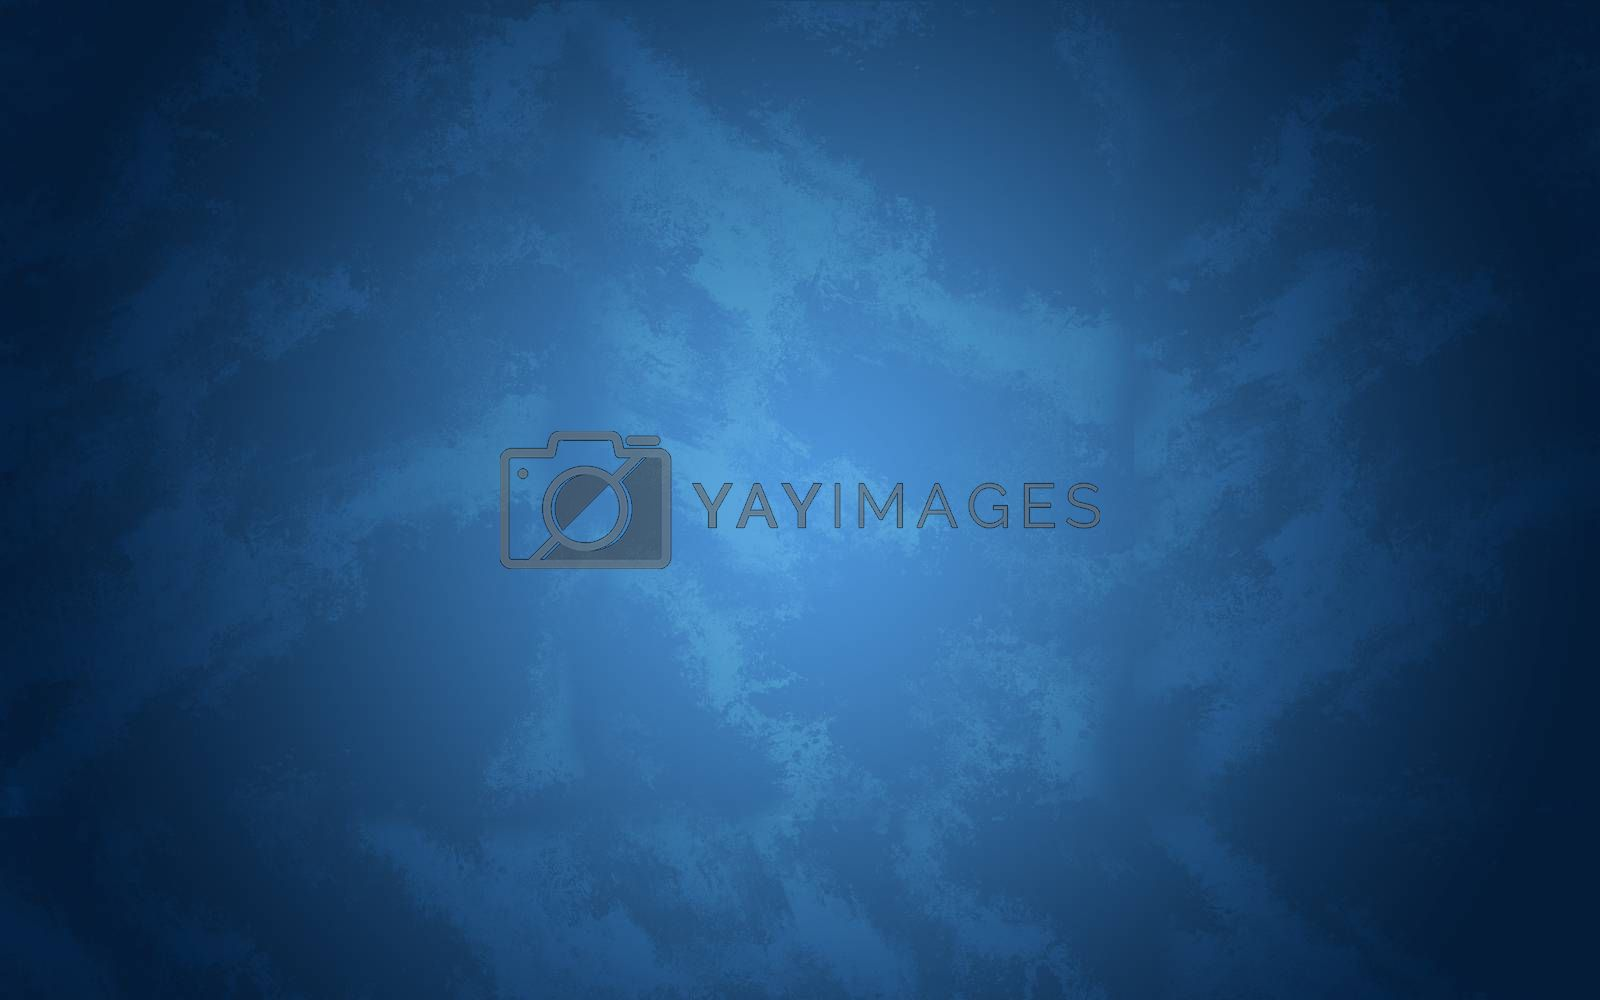 Abstract texture of blue painted concrete wall